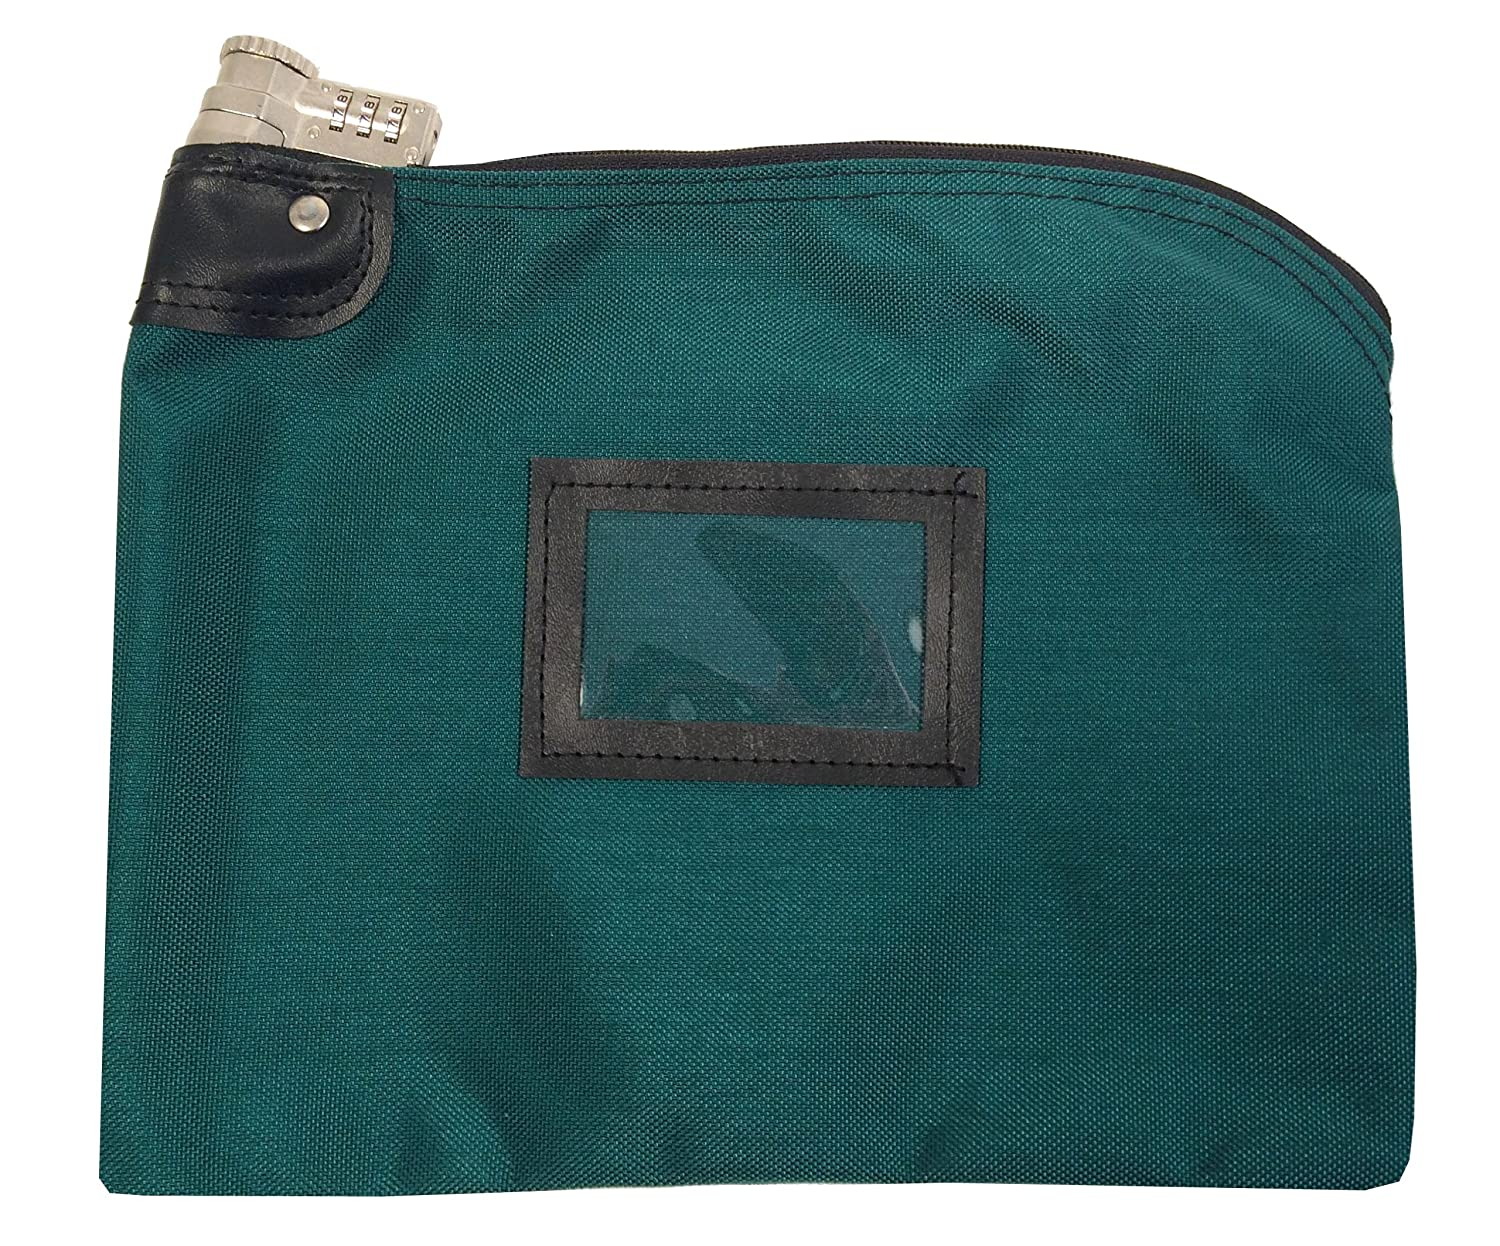 Lockable Bank Bag 1000 Denier Nylon Combination and Keyed Security System (Teal) Cardinal Bag Supplies 76161260